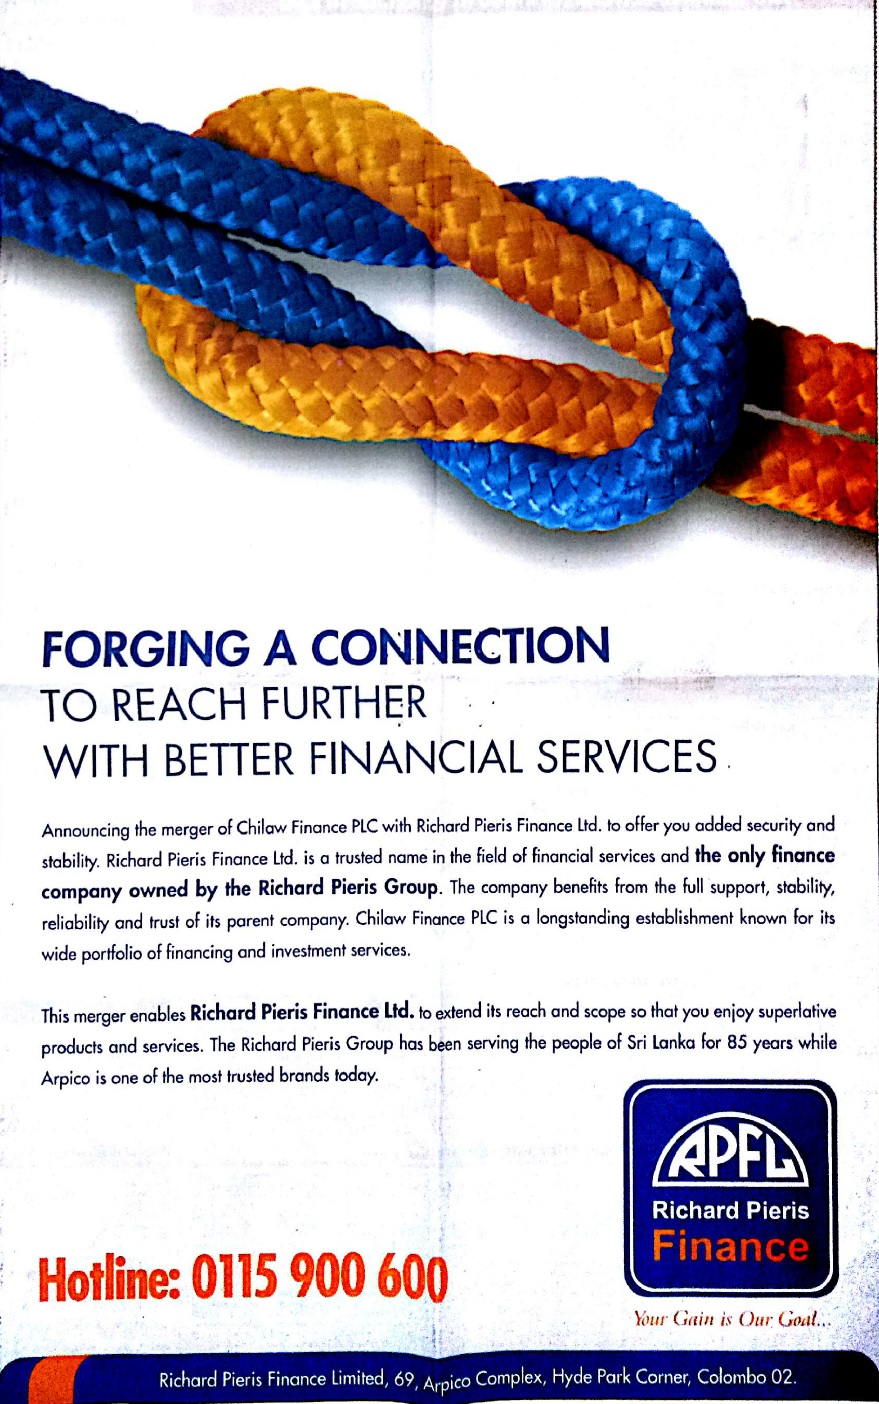 Announcing The Merger Of Chilaw Finance PLC With Richard Pieris Finance Ltd